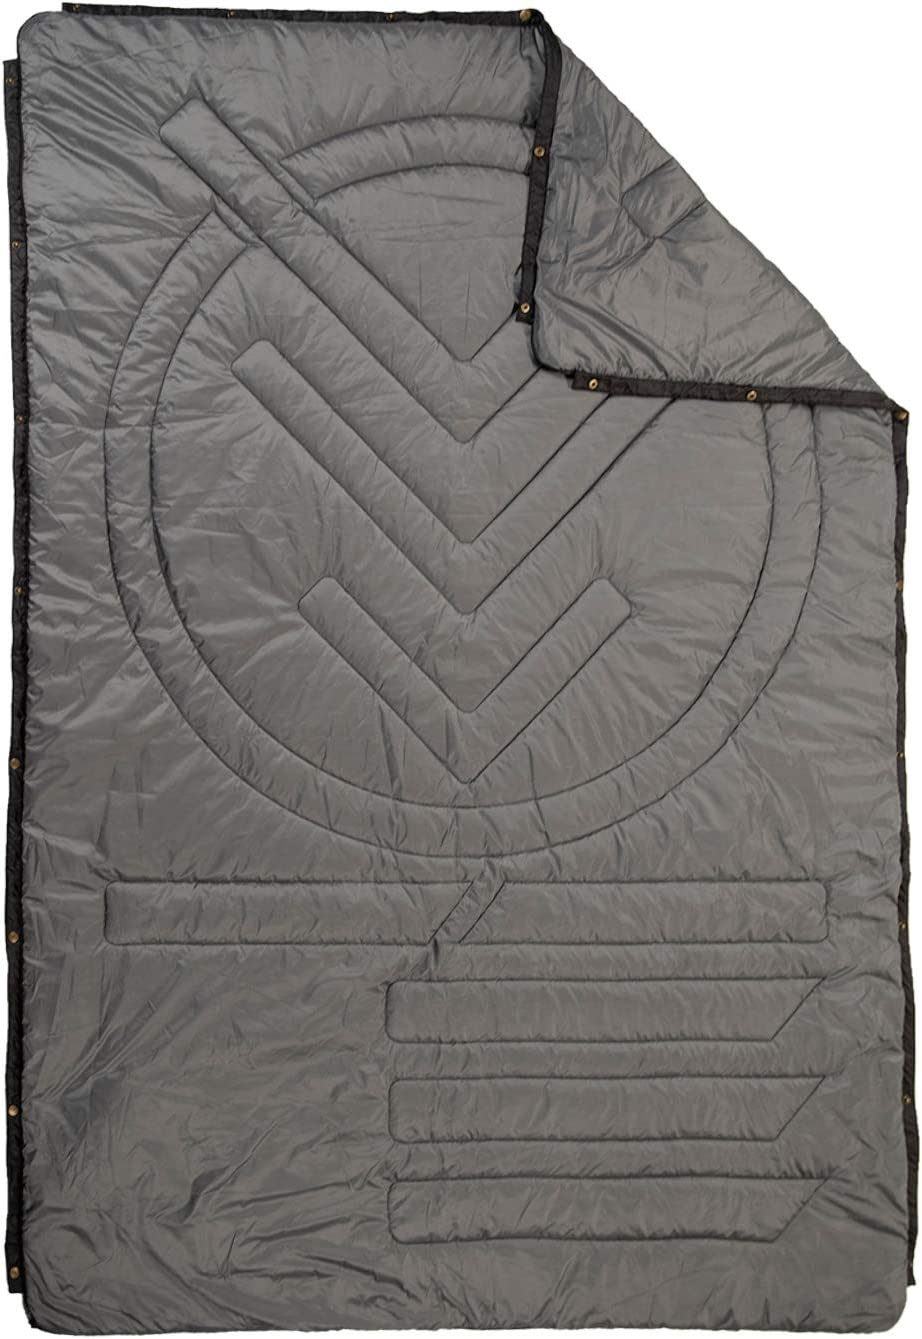 Hiking Picnics /& Festivals VOITED Ripstop Outdoor Pillow Blanket Versatile Insulated /& Water-Resistant Blanket for Camping